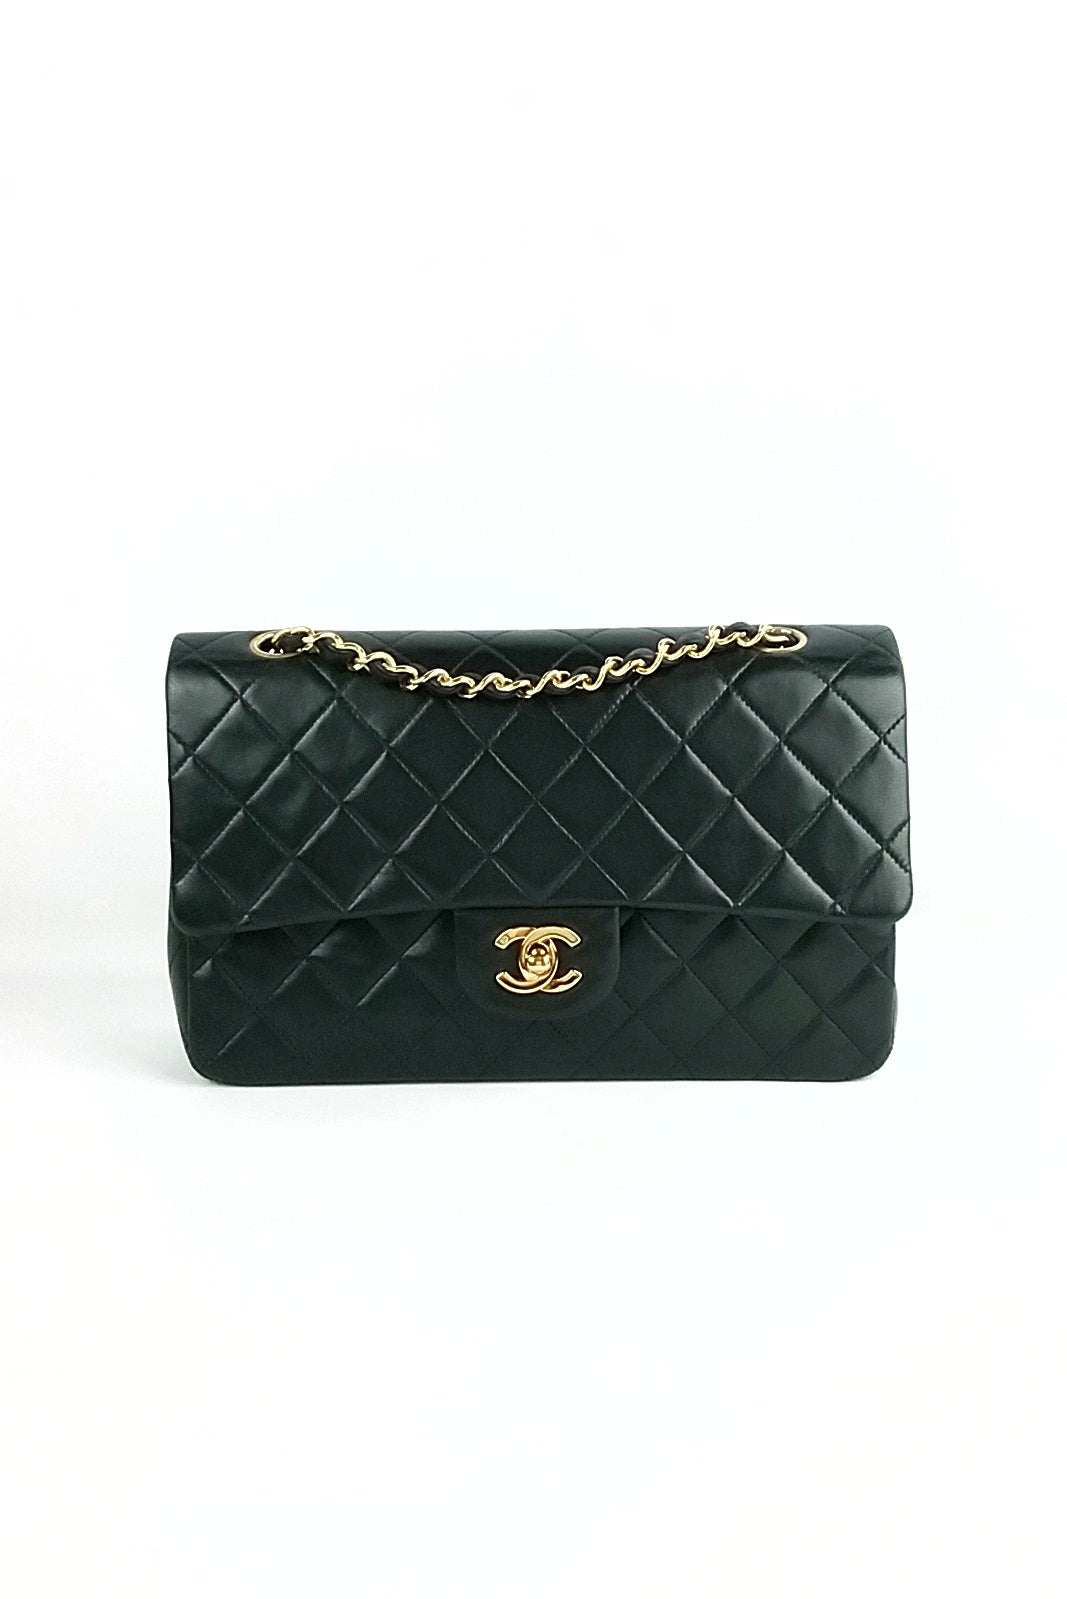 Black Lambskin Vintage Medium Double Flap